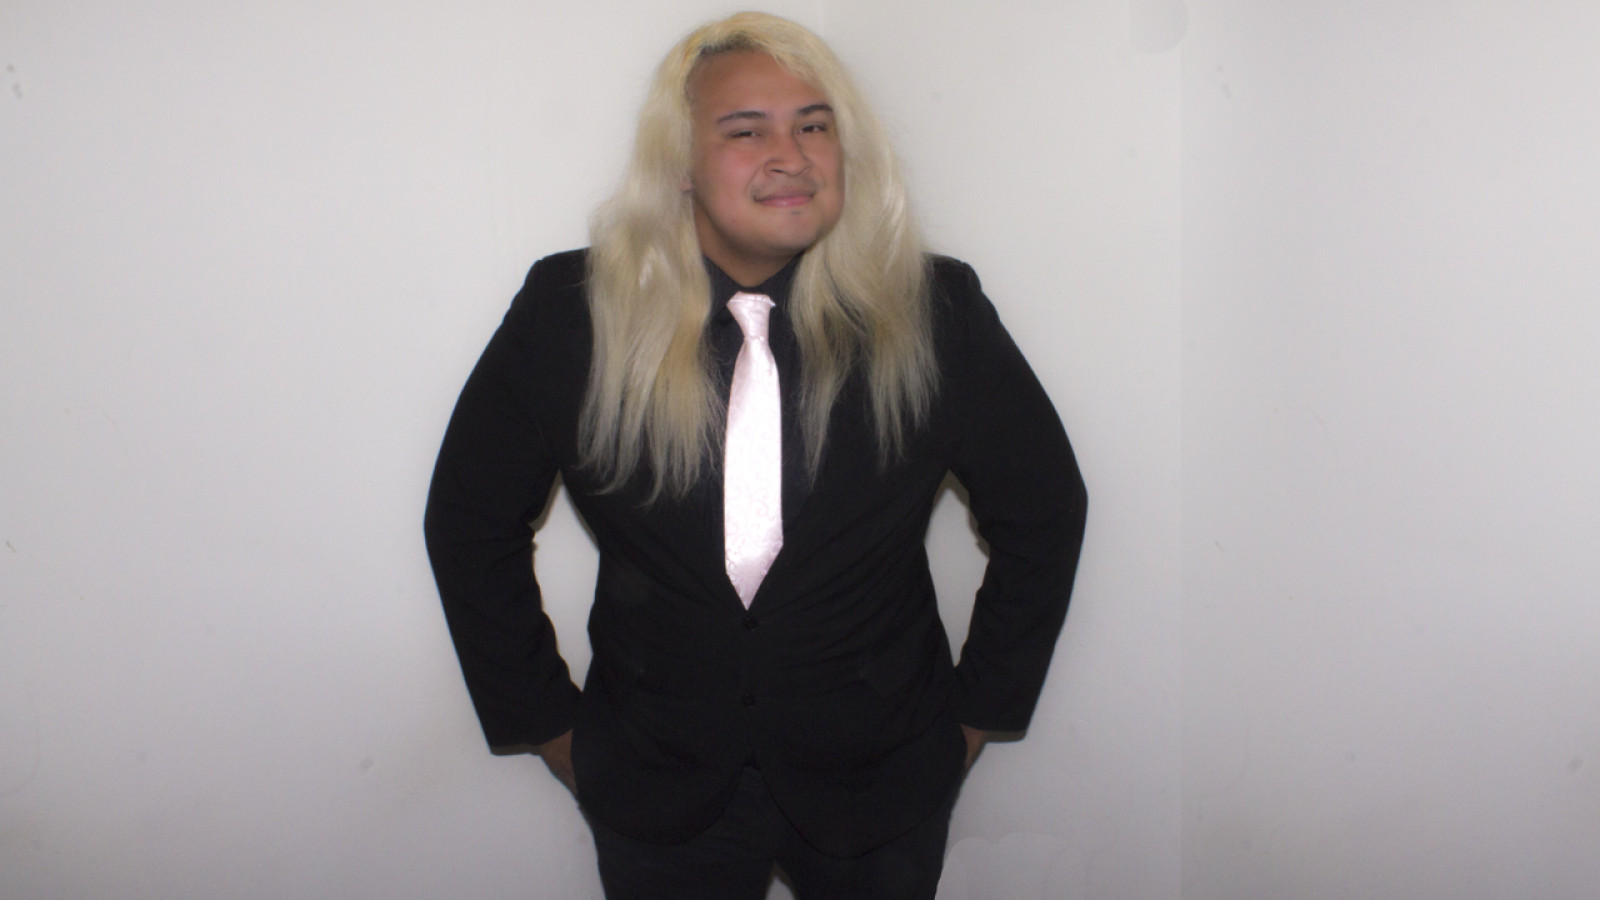 A young, light skinned man with long, blonde, wavy hair and brown eyes, wearing a black suit and shirt with a pink silk tie stands against a light grey background. He faces us with hands in trouser pockets, he has a content smile